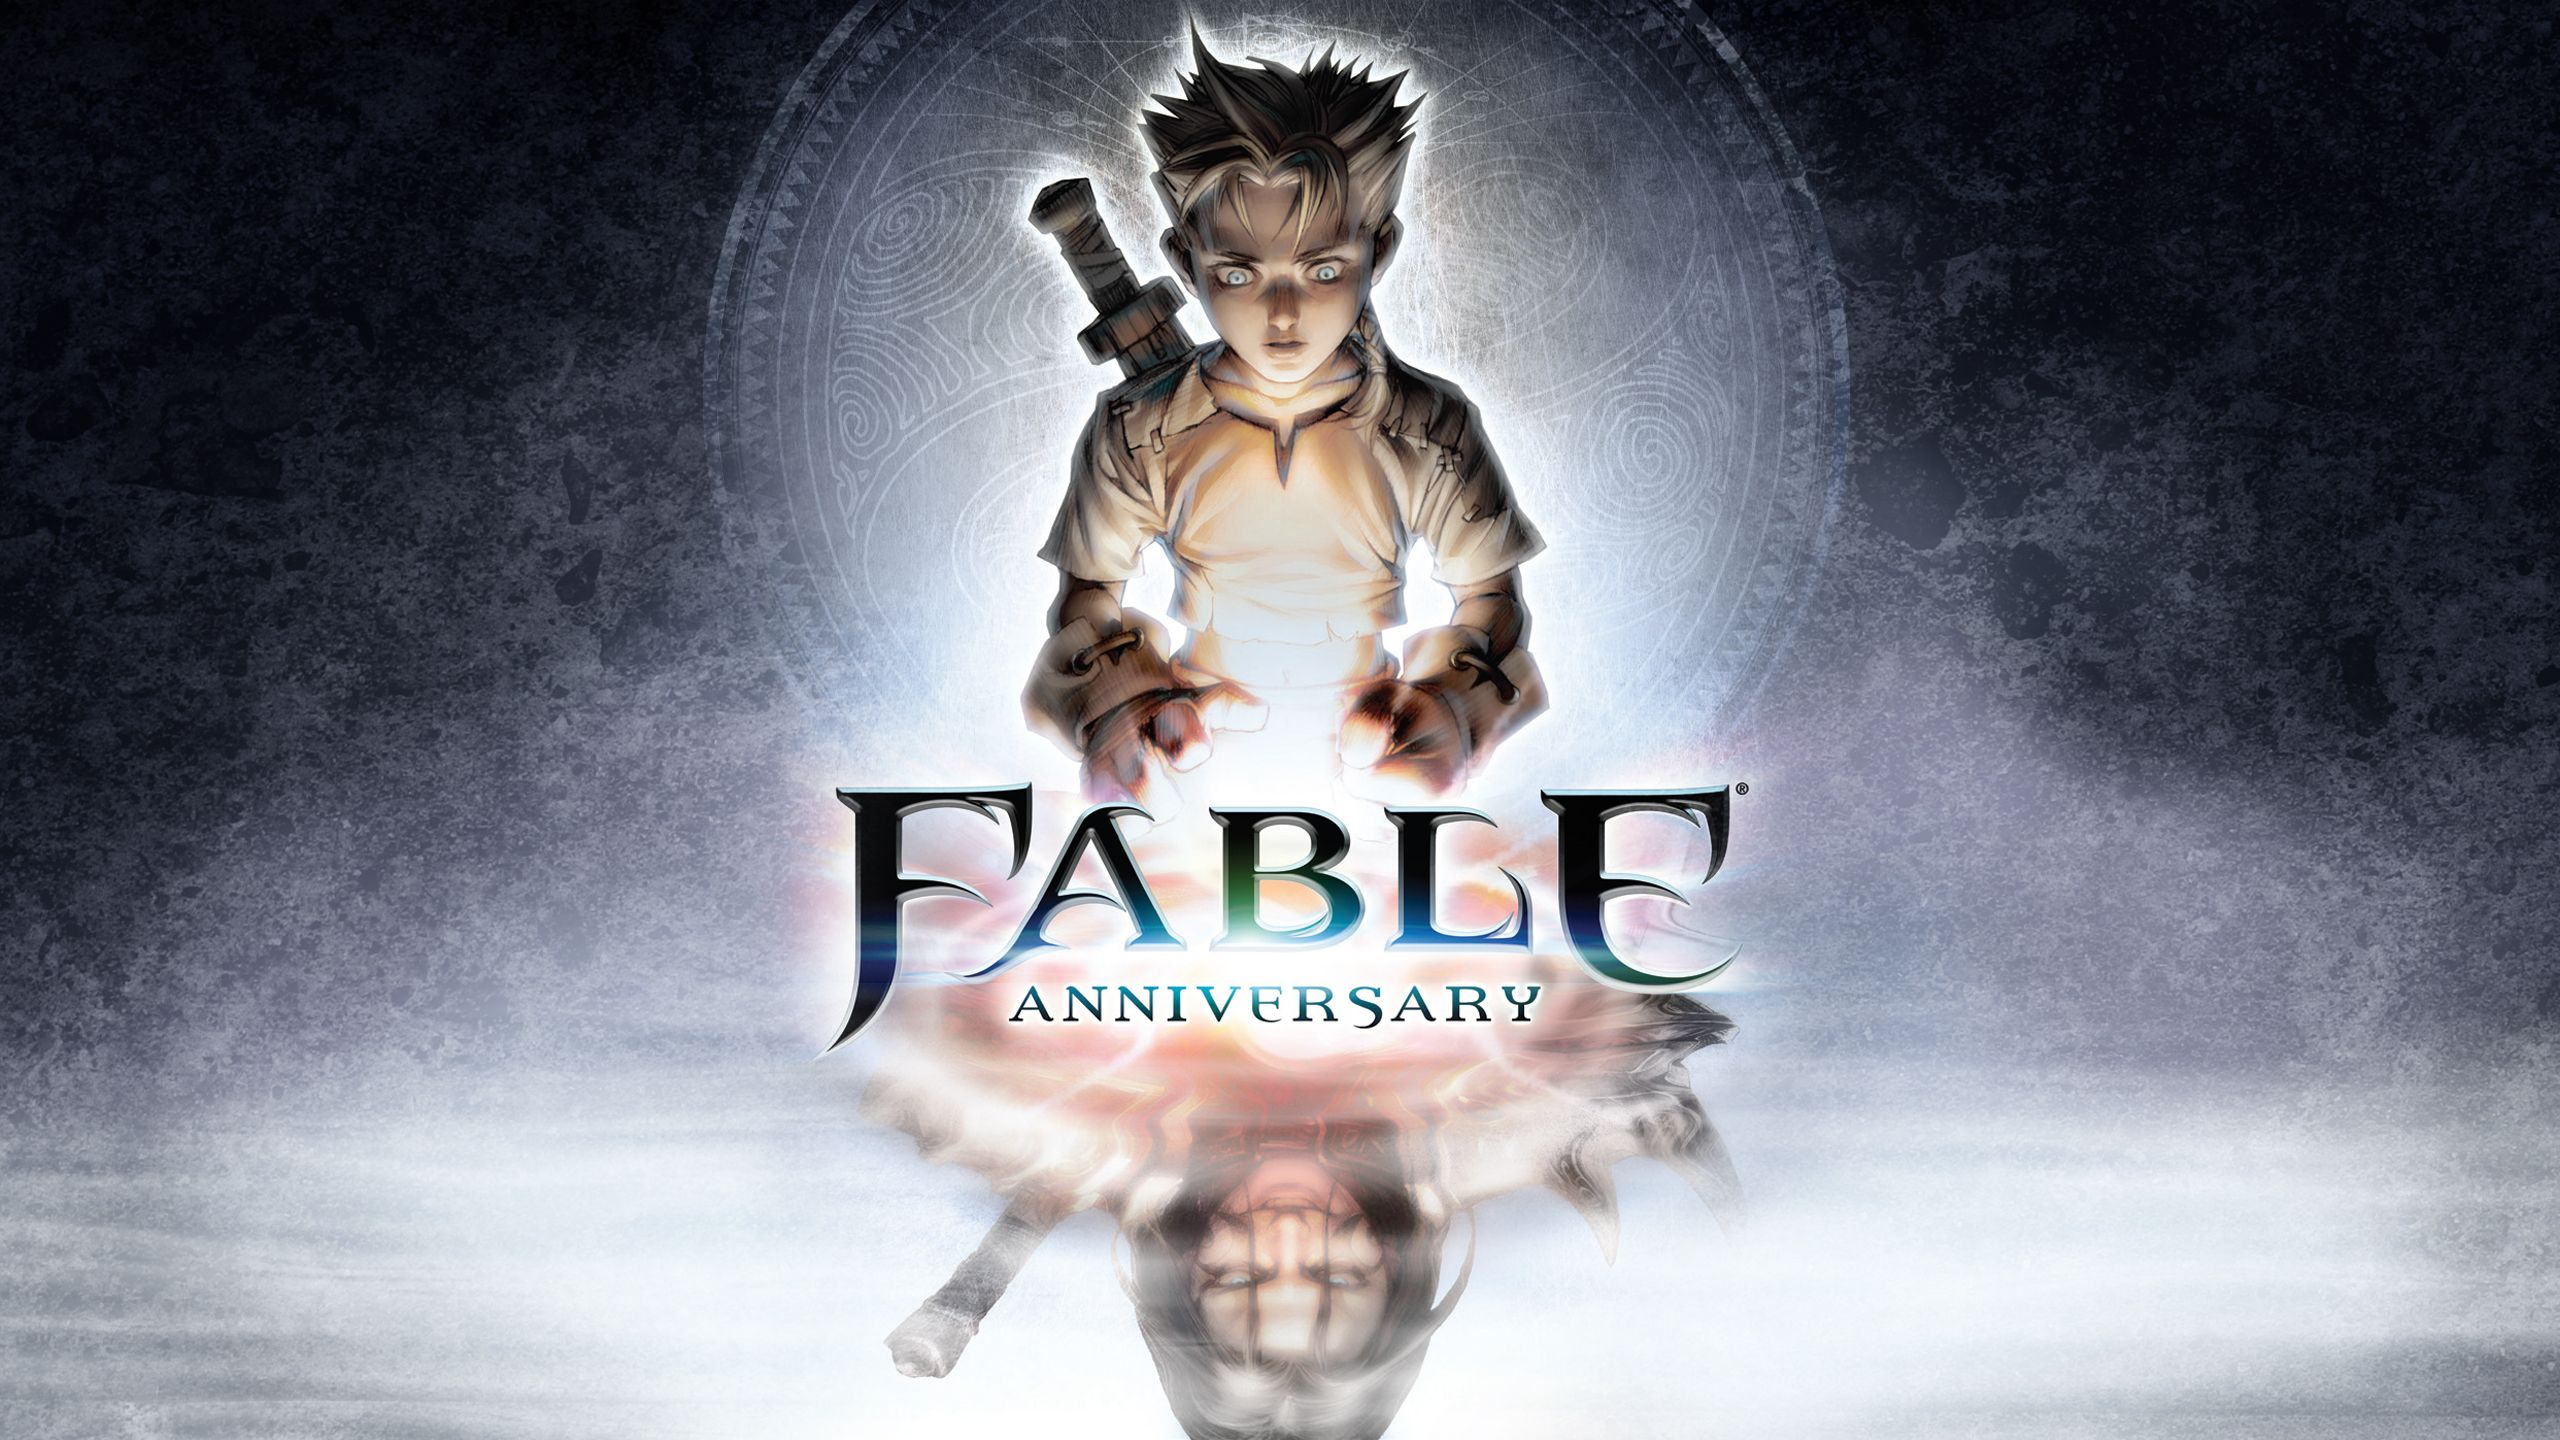 Fable Anniversary heading to the PC - Lightning Gaming News